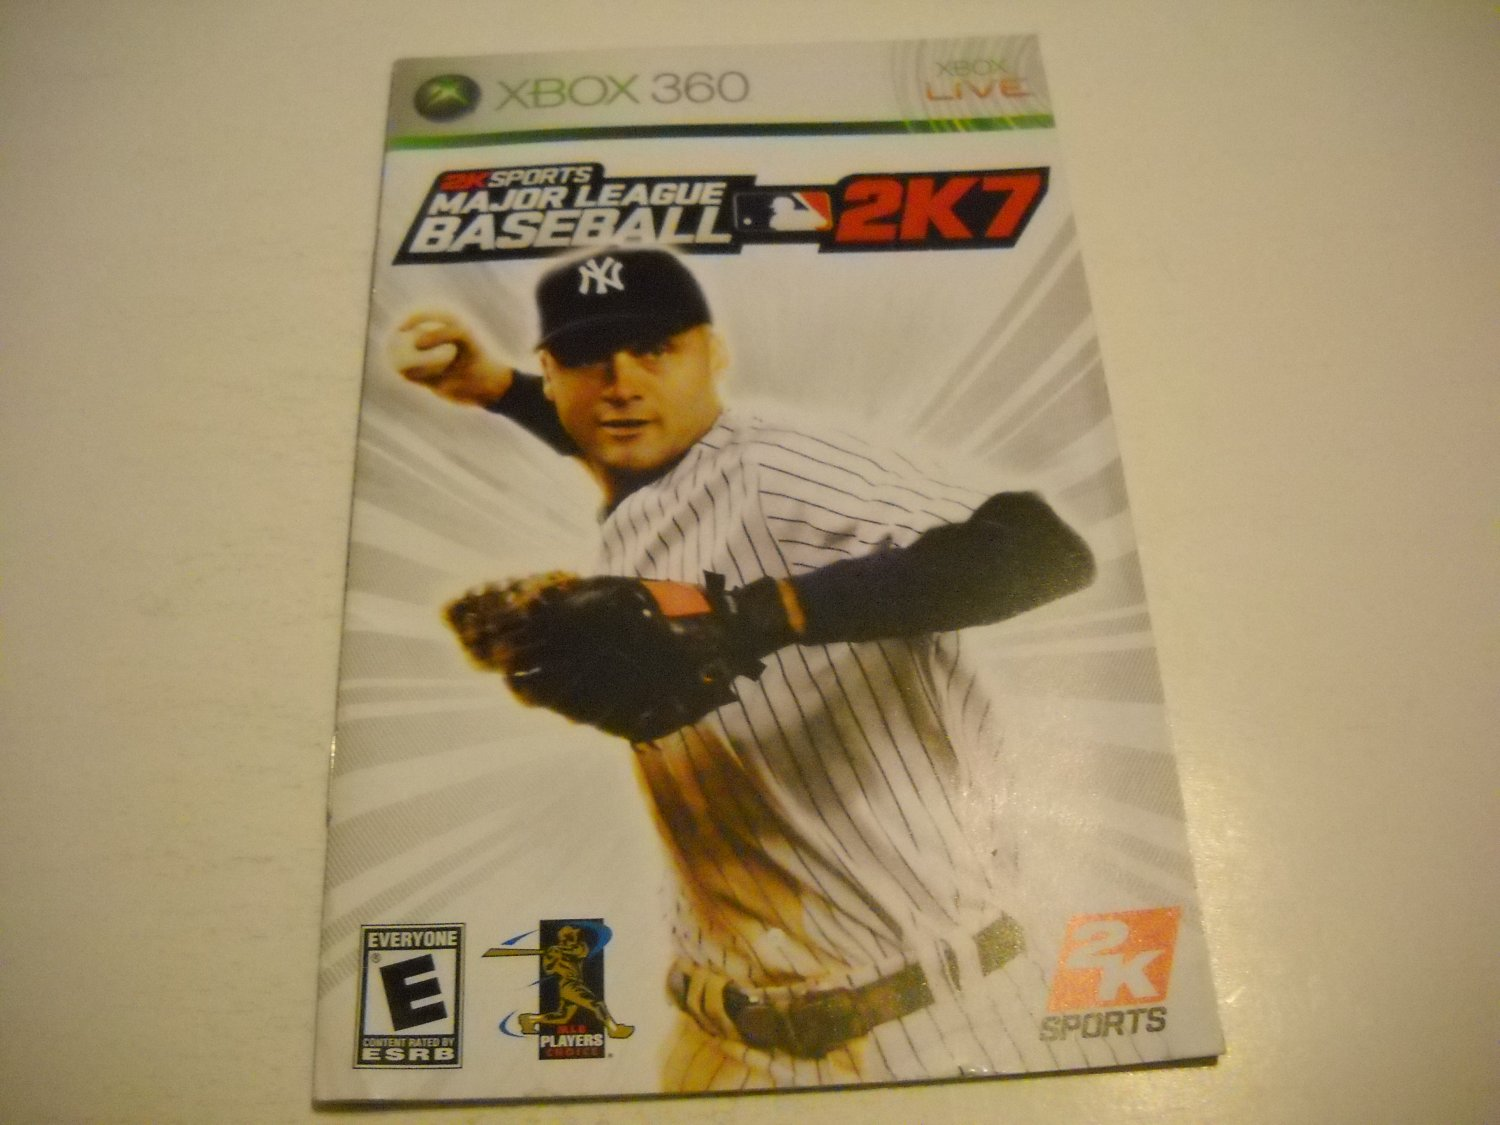 Manual ONLY ~  for Major League Baseball 2K7   - Xbox 360 Instruction Booklet